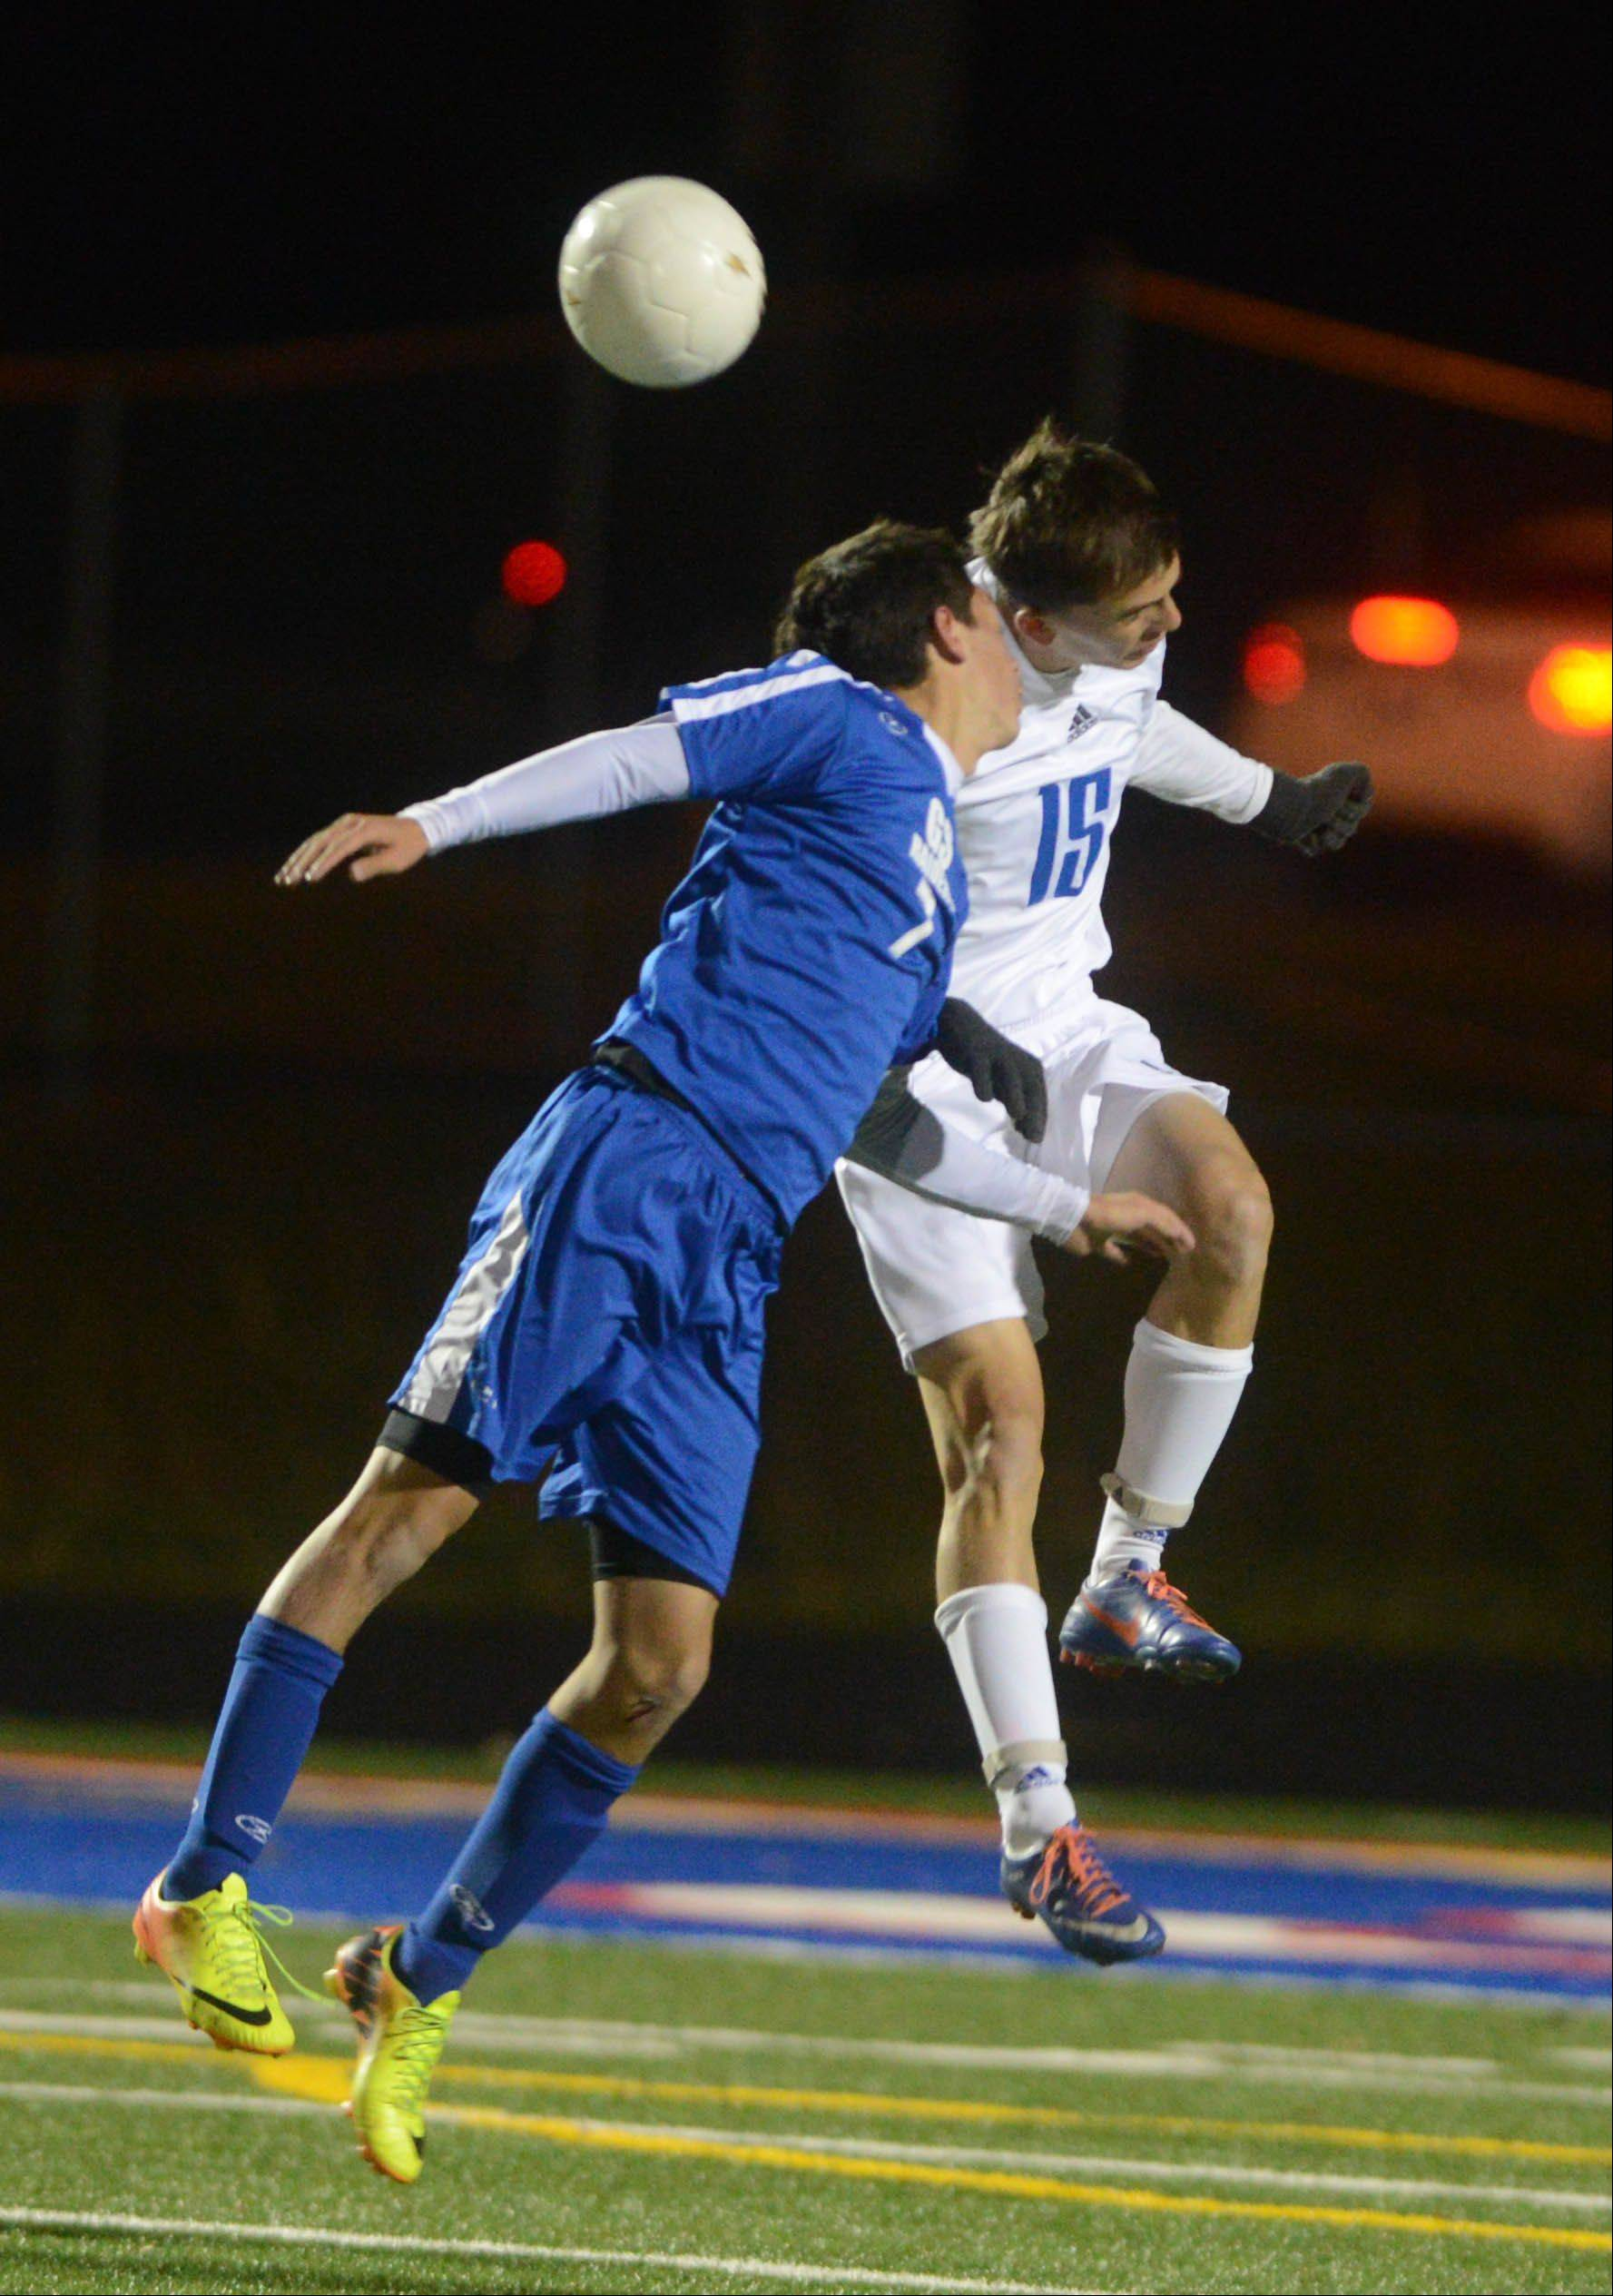 Jonathan Gutierrez of Glenbard South,left, and Paul Plizga of Fenton go up for a ball during the Fenton at Glenbard South boys soccer Class 2A regional semifinal game Wednesday.